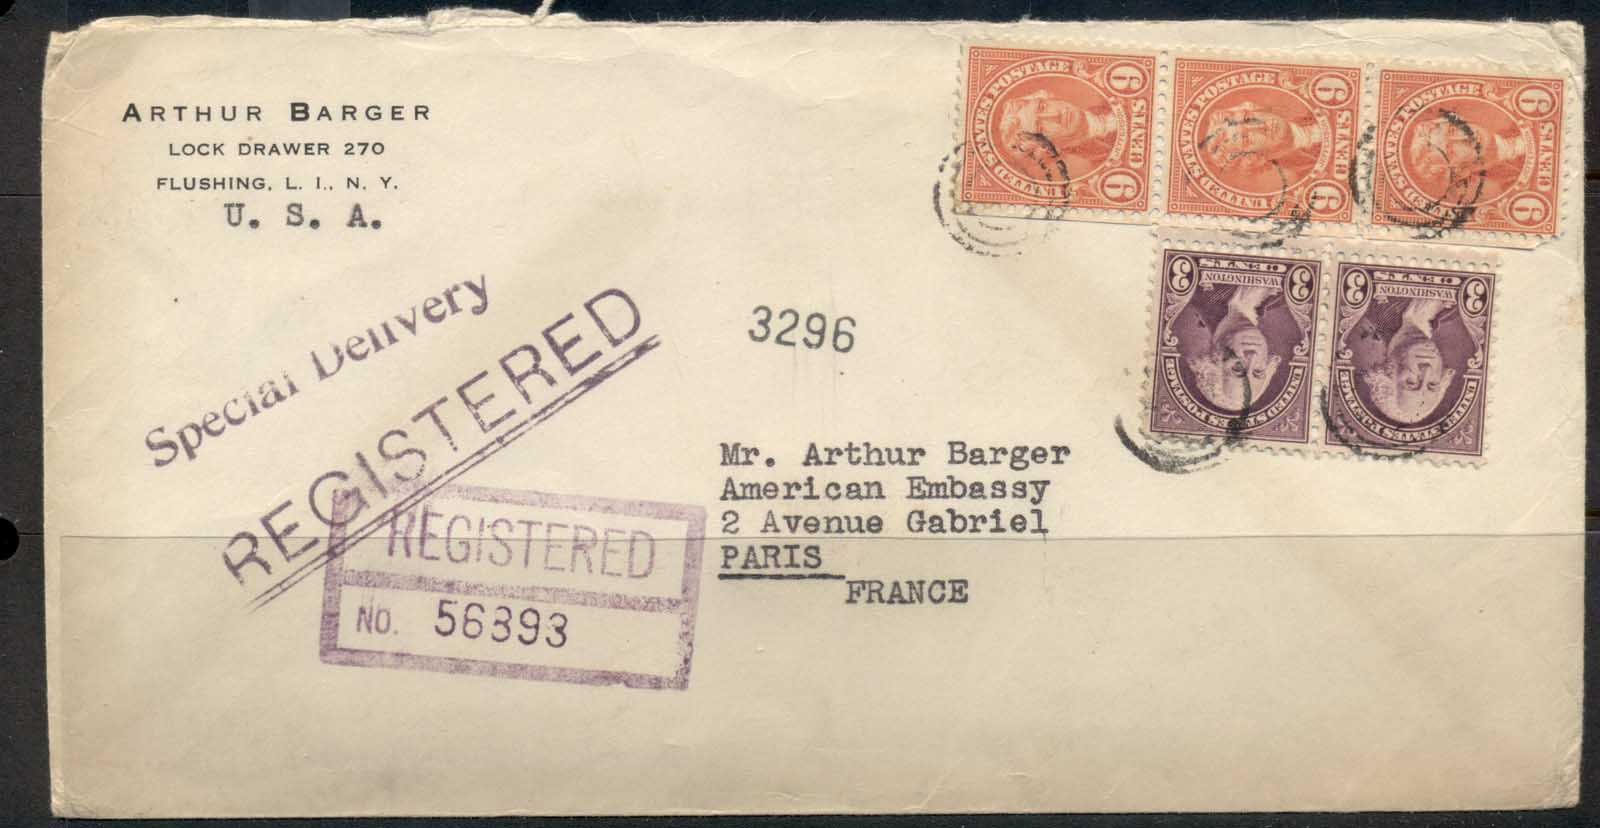 USA 1922-38 Fourth Bureau Jefferson 3x9c Registered Flushing 1938 cover